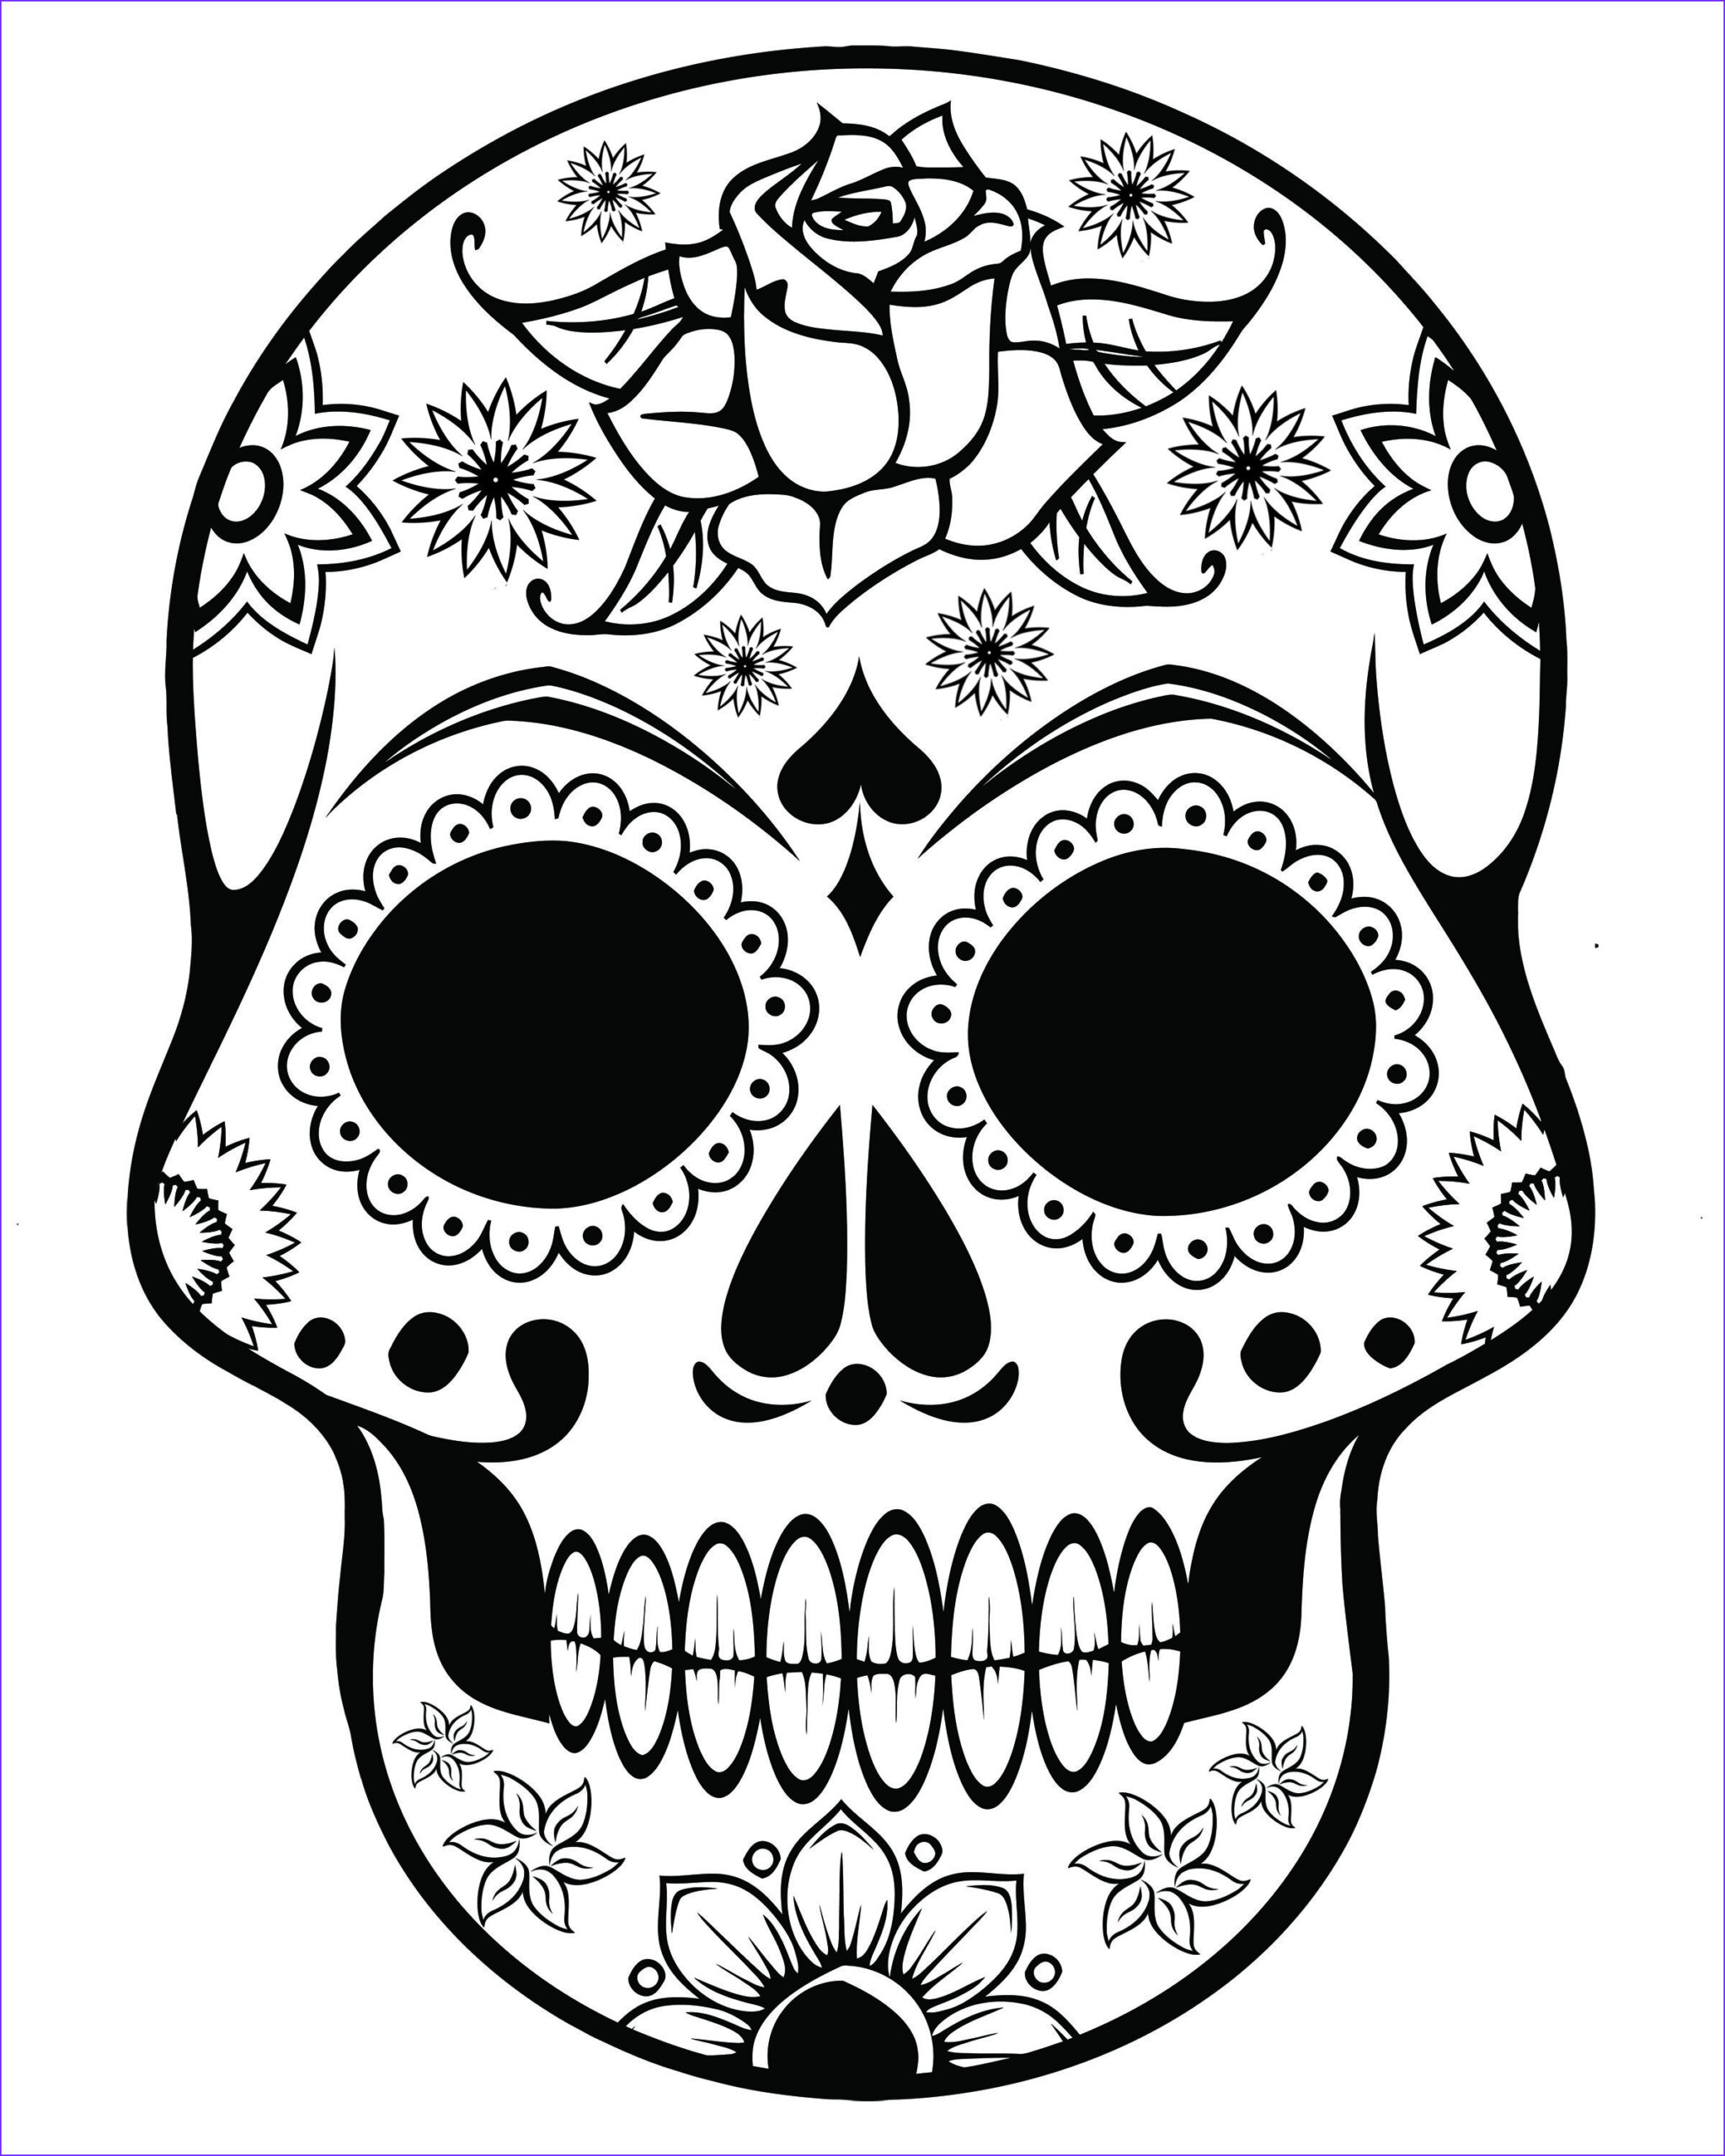 Free Adult Halloween Coloring Pages Inspirational Photos Free Printable Halloween Coloring Pages for Adults Sugar